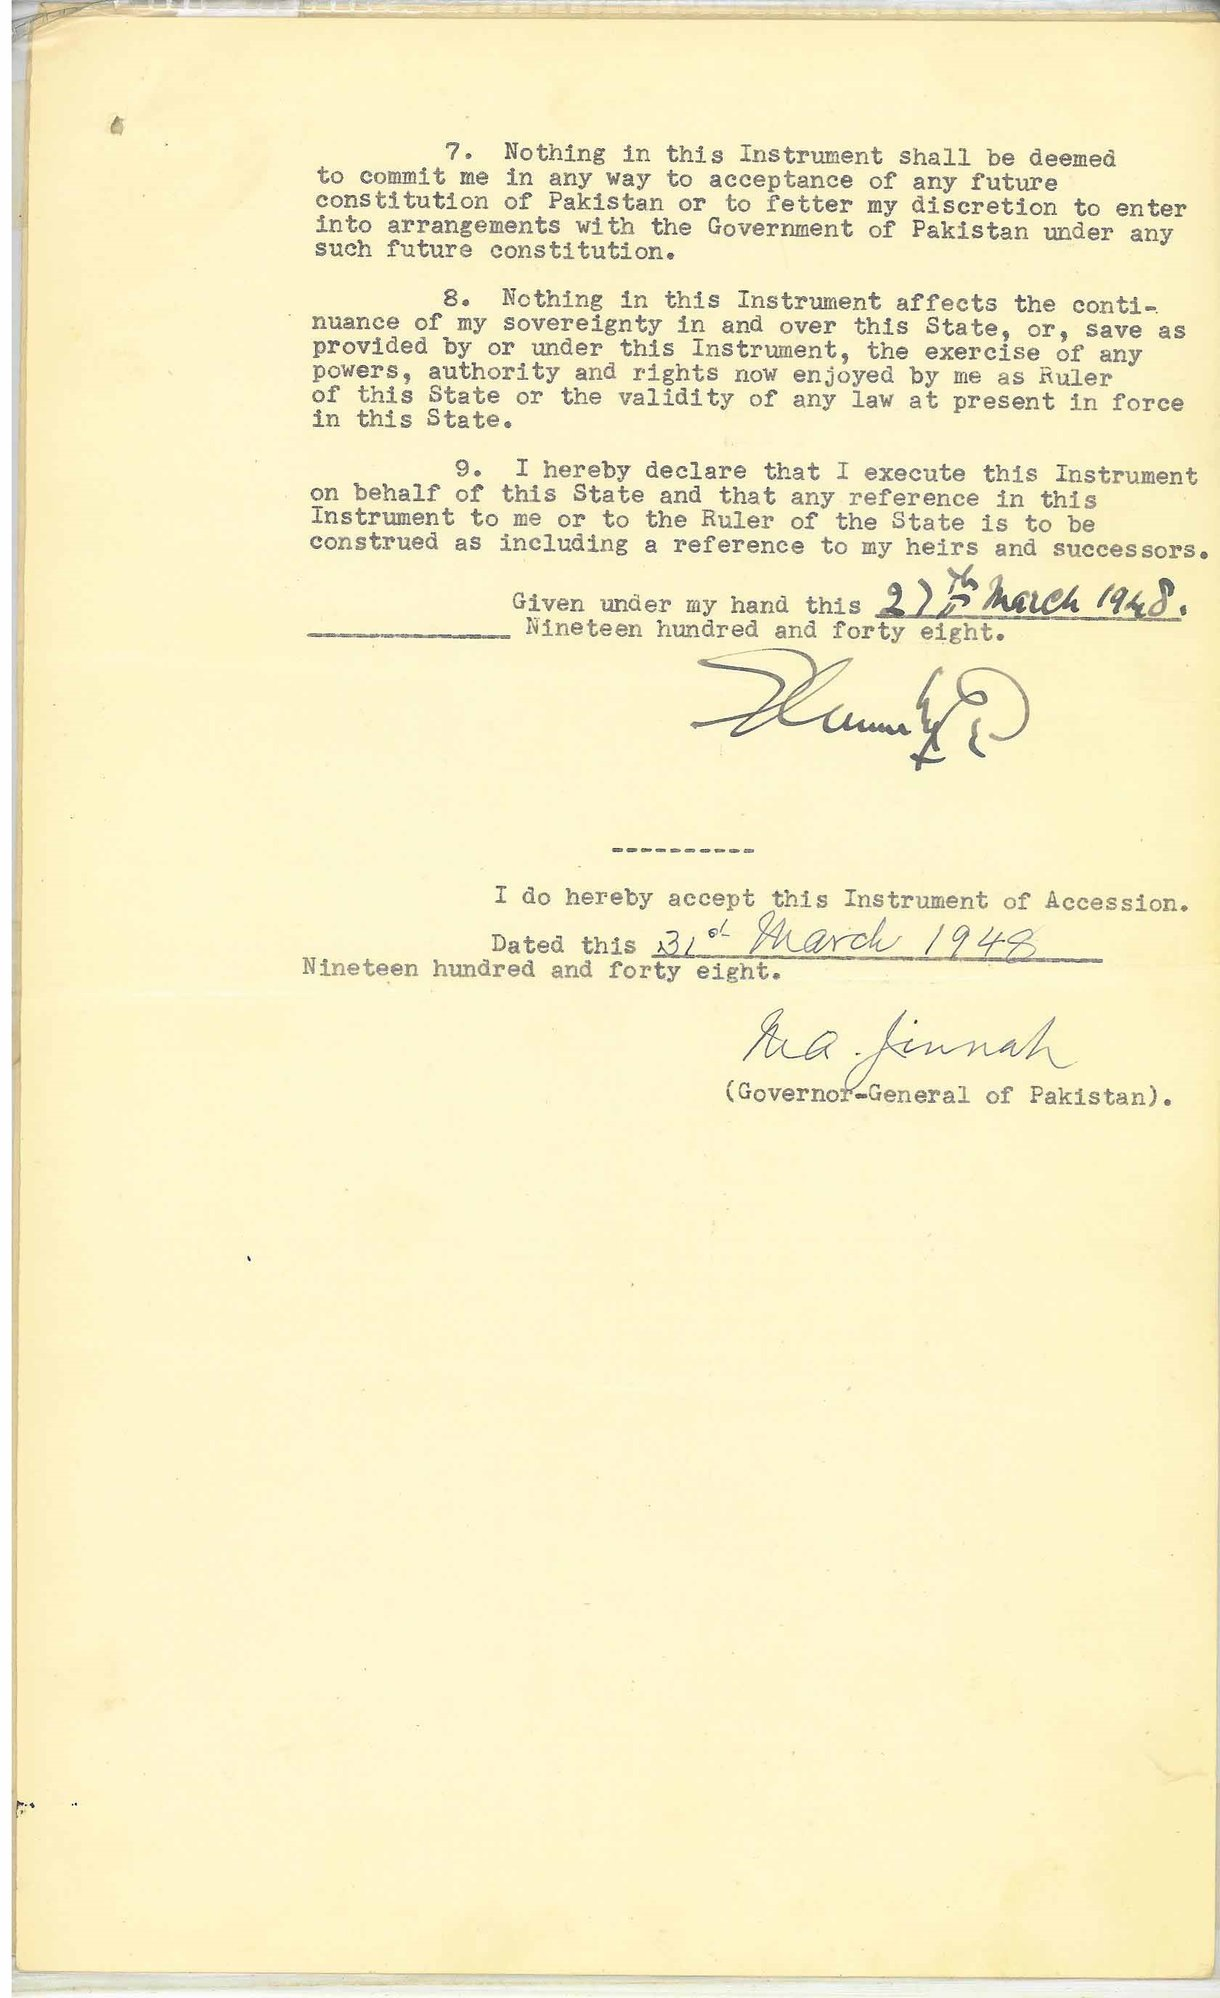 Instrument of Accession of Kalat to Pakistan 27th-31st March 1948_02a.jpg